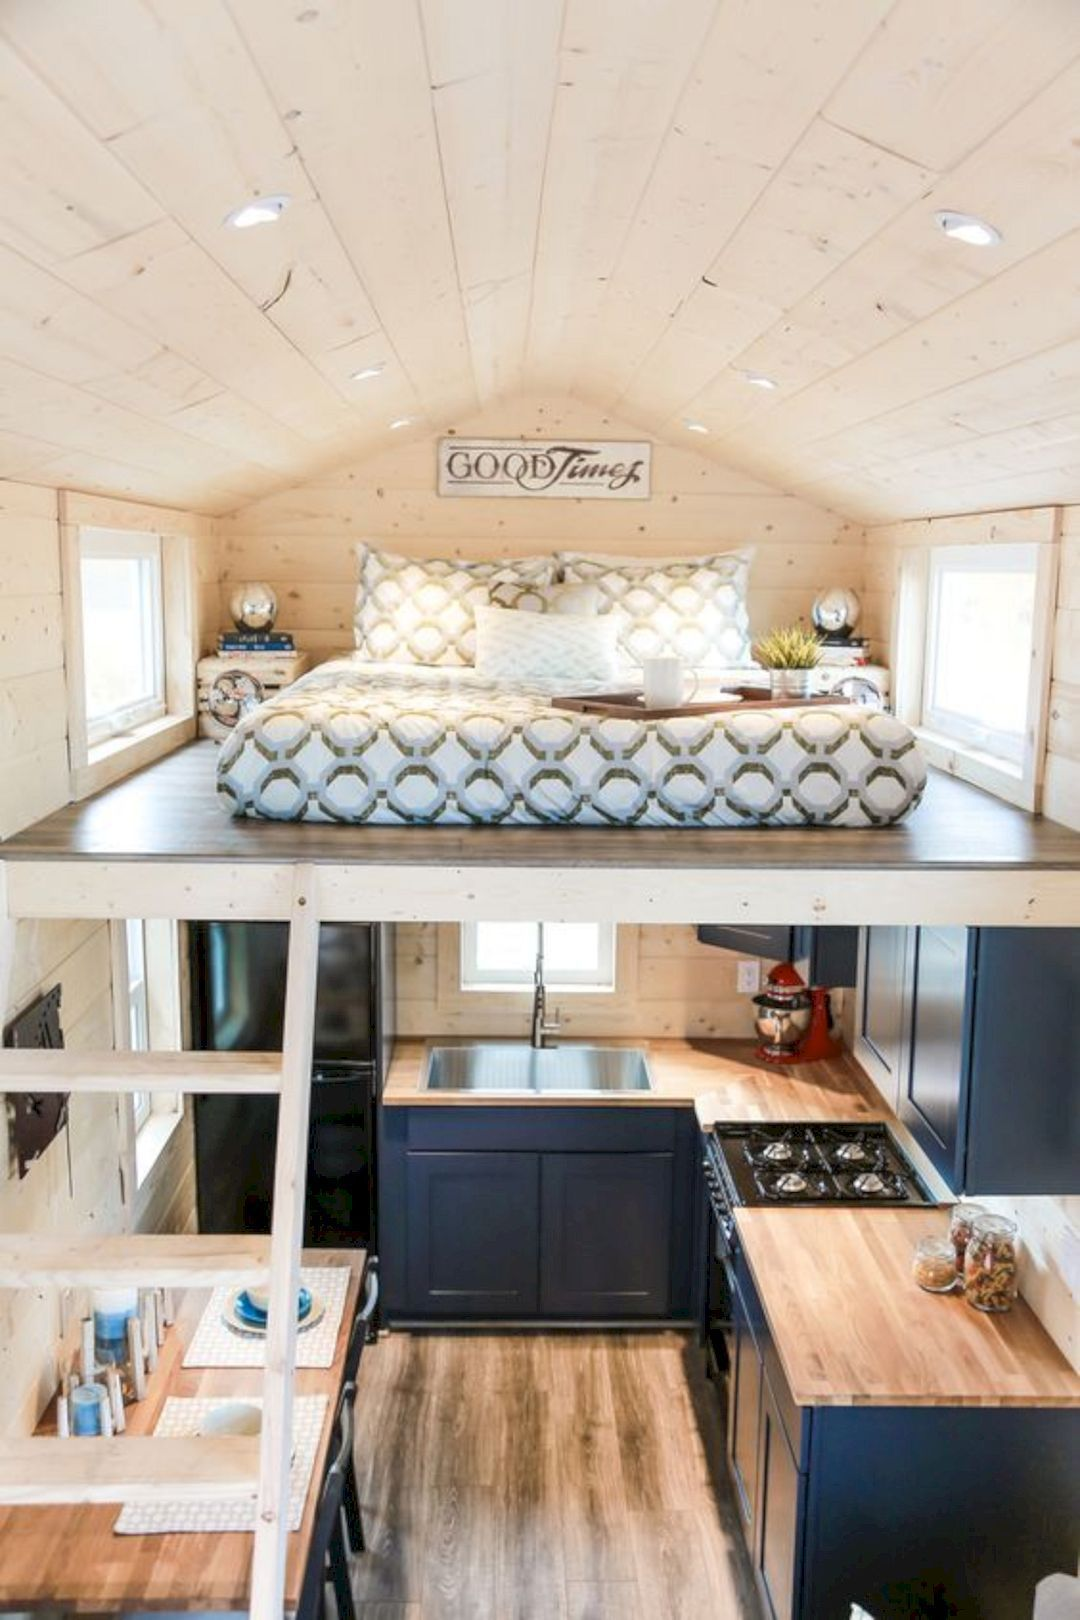 Interior Designs For Tiny Homes Html on interior design for photography, interior design for windows, interior design for cabins, interior design for people, interior design for christmas, interior design for travel trailer, interior design for food, interior design for cottages, interior design for small house, interior design for boats, interior design for small spaces, interior design for building,